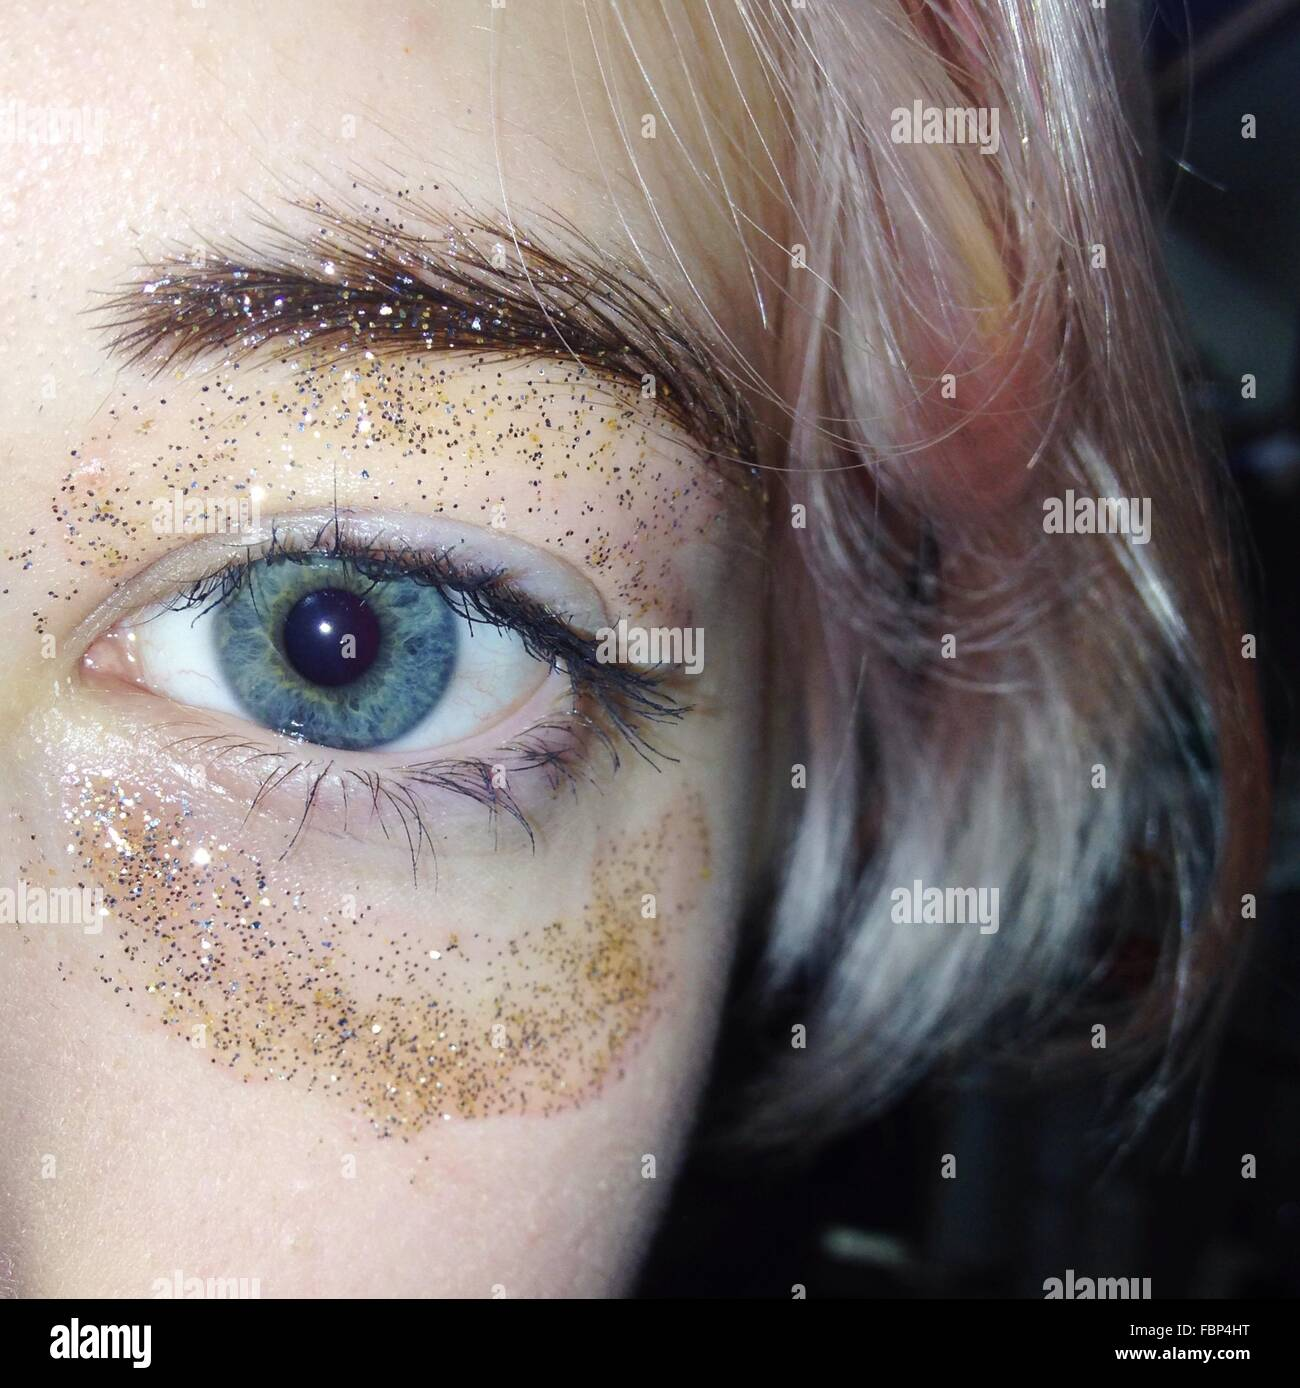 Extreme Close-Up Of Woman Eye With Glitter - Stock Image